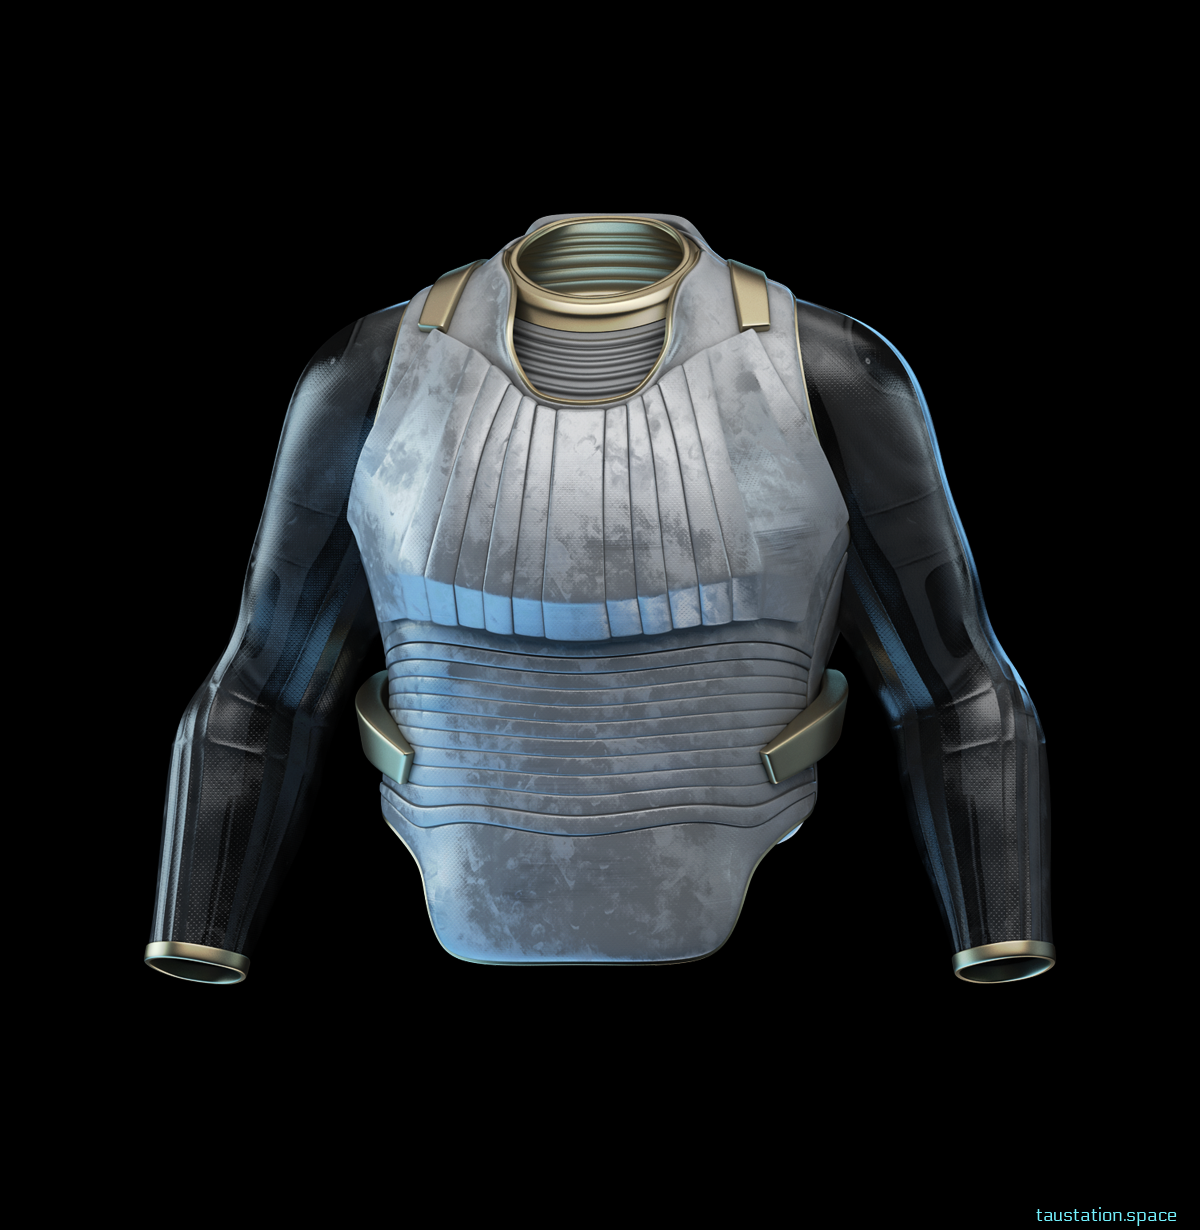 A light grey metallic part with ripples is covering the torso and a a dark grey long sleeve is below. It shows some structure, eventually made of carbon fibers.